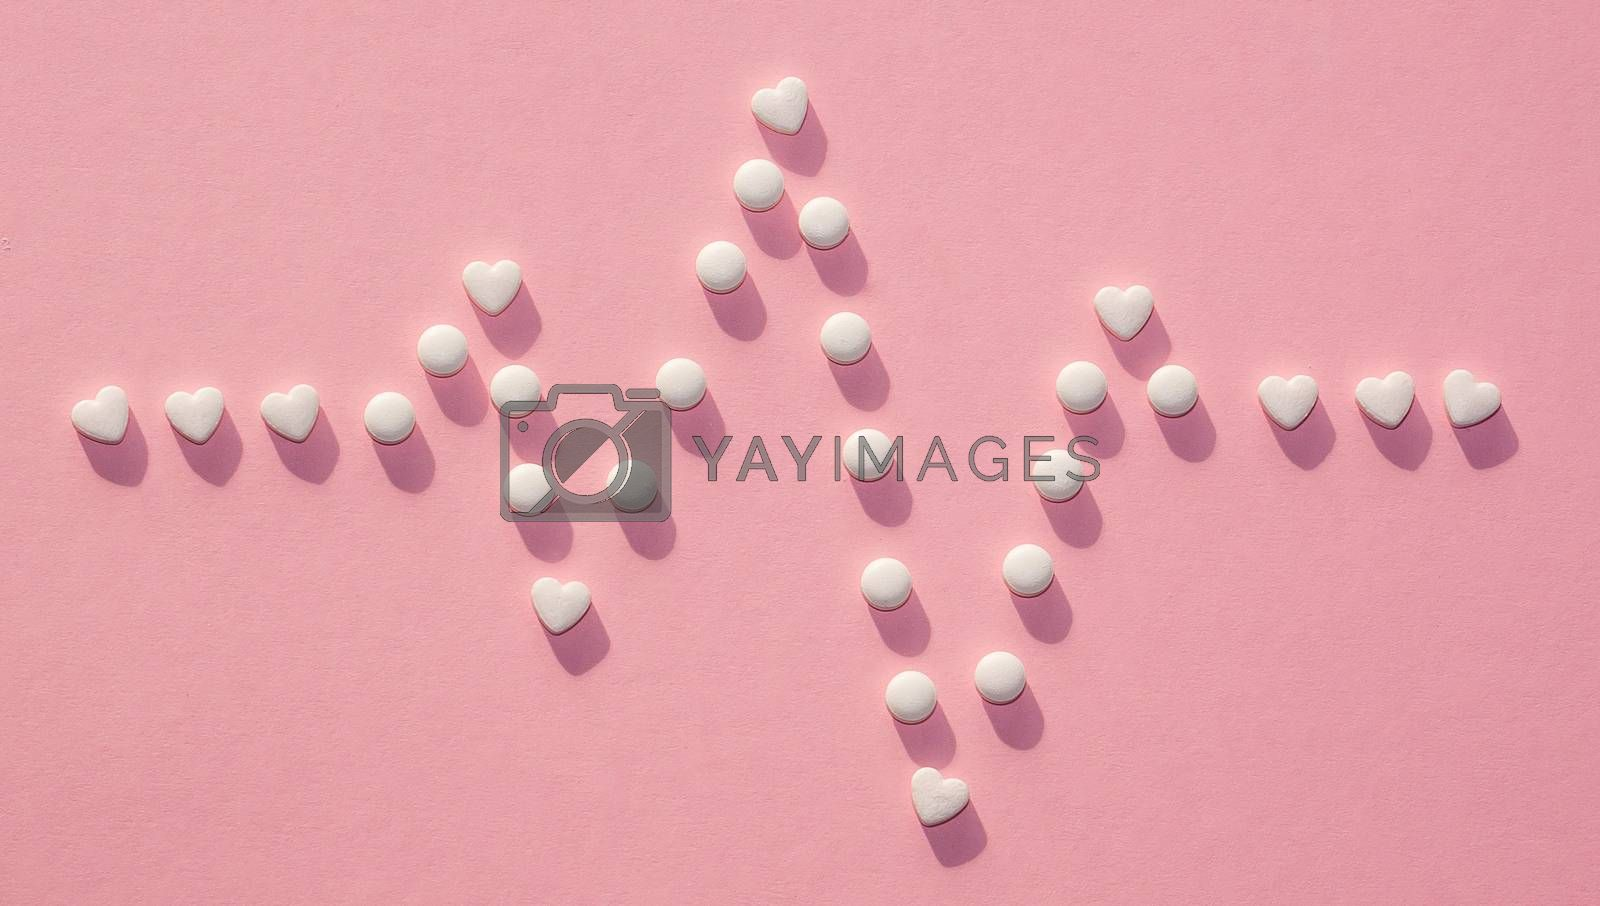 A lot of pills on the background, stethoscope and boxes